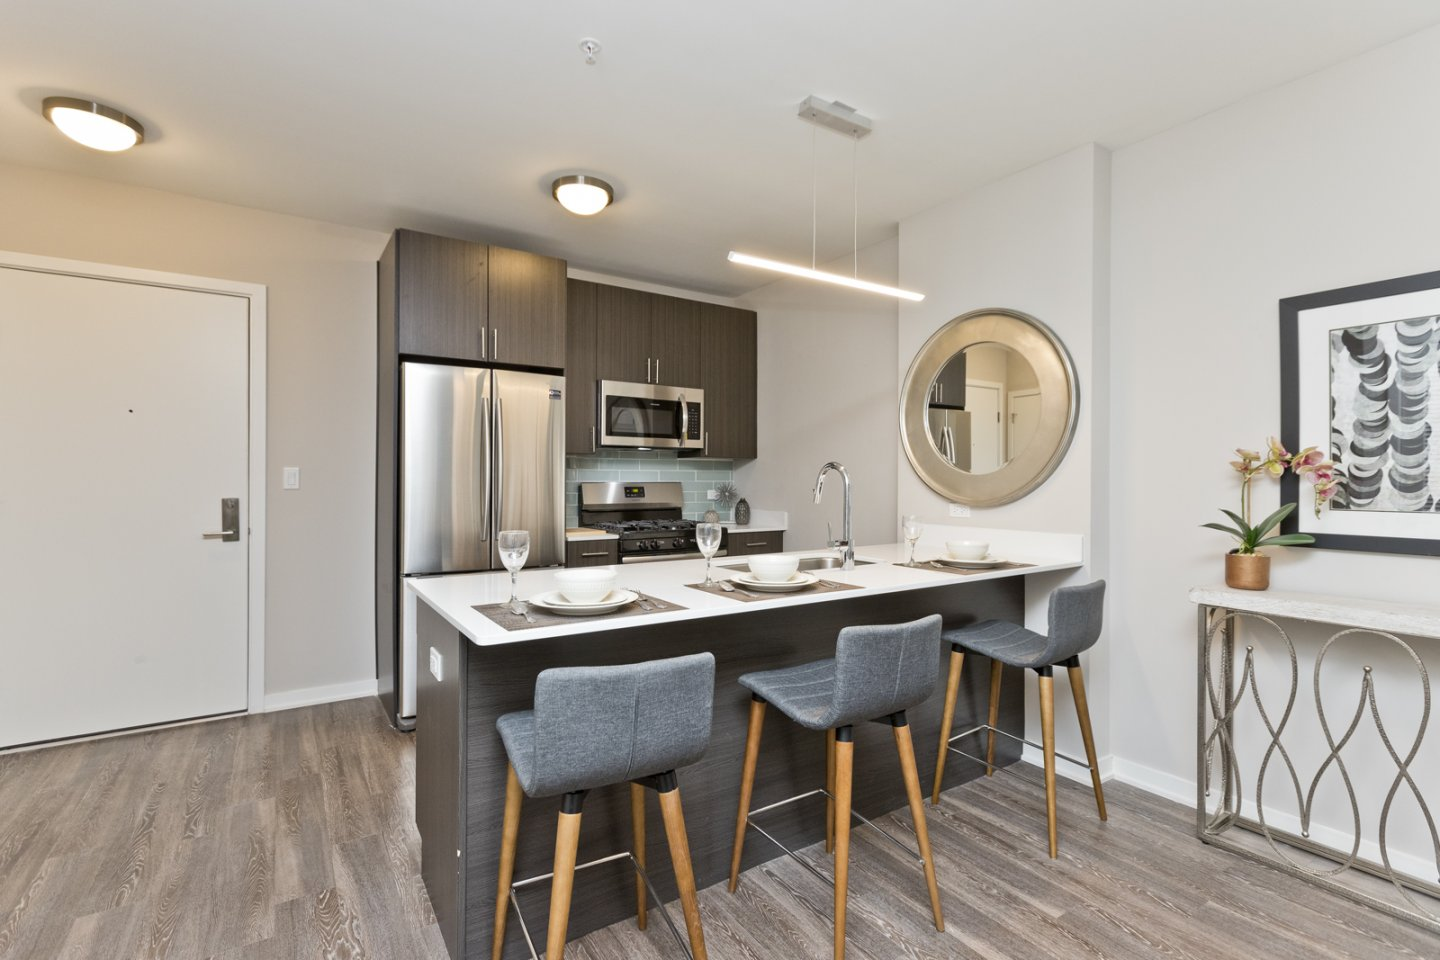 model unit kitchen island and wood floors at North Park Pointe Apartments